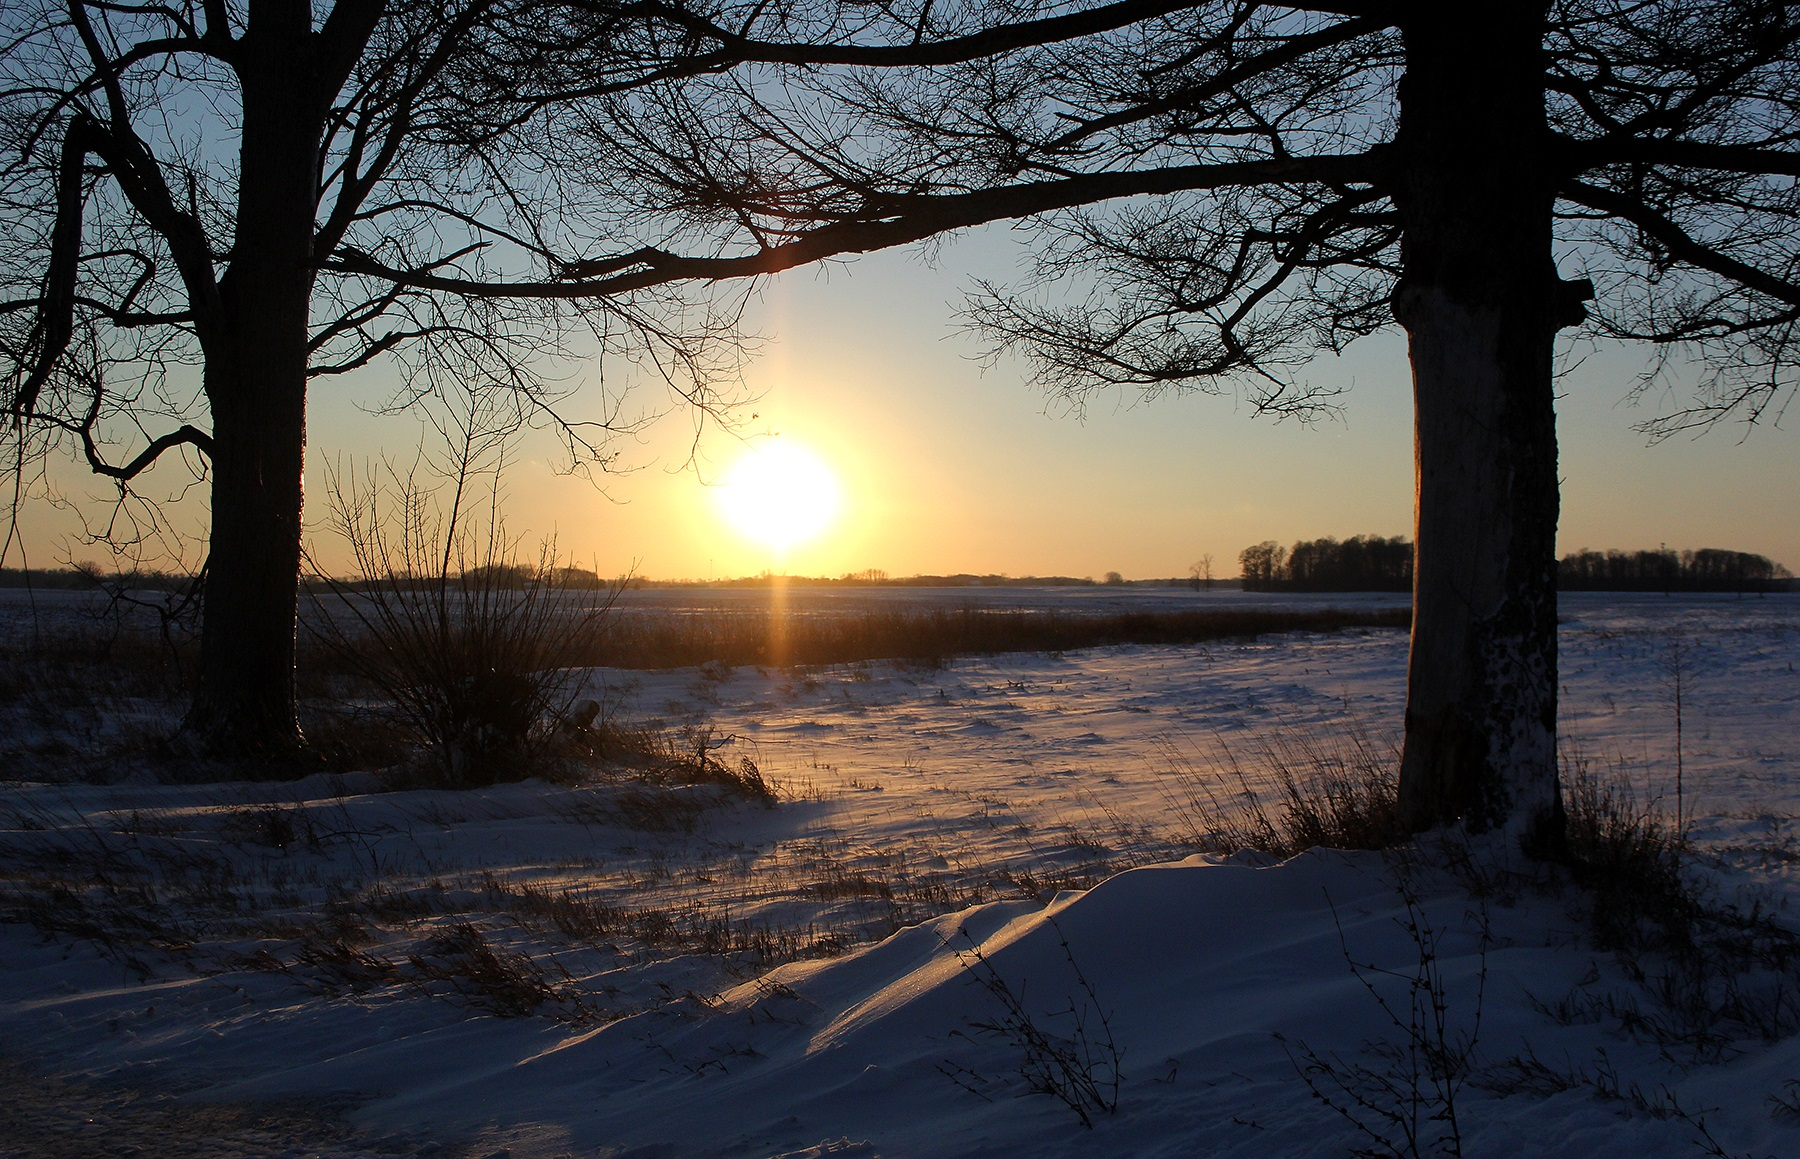 Sunset on a snowy day in Henry County, Indiana.